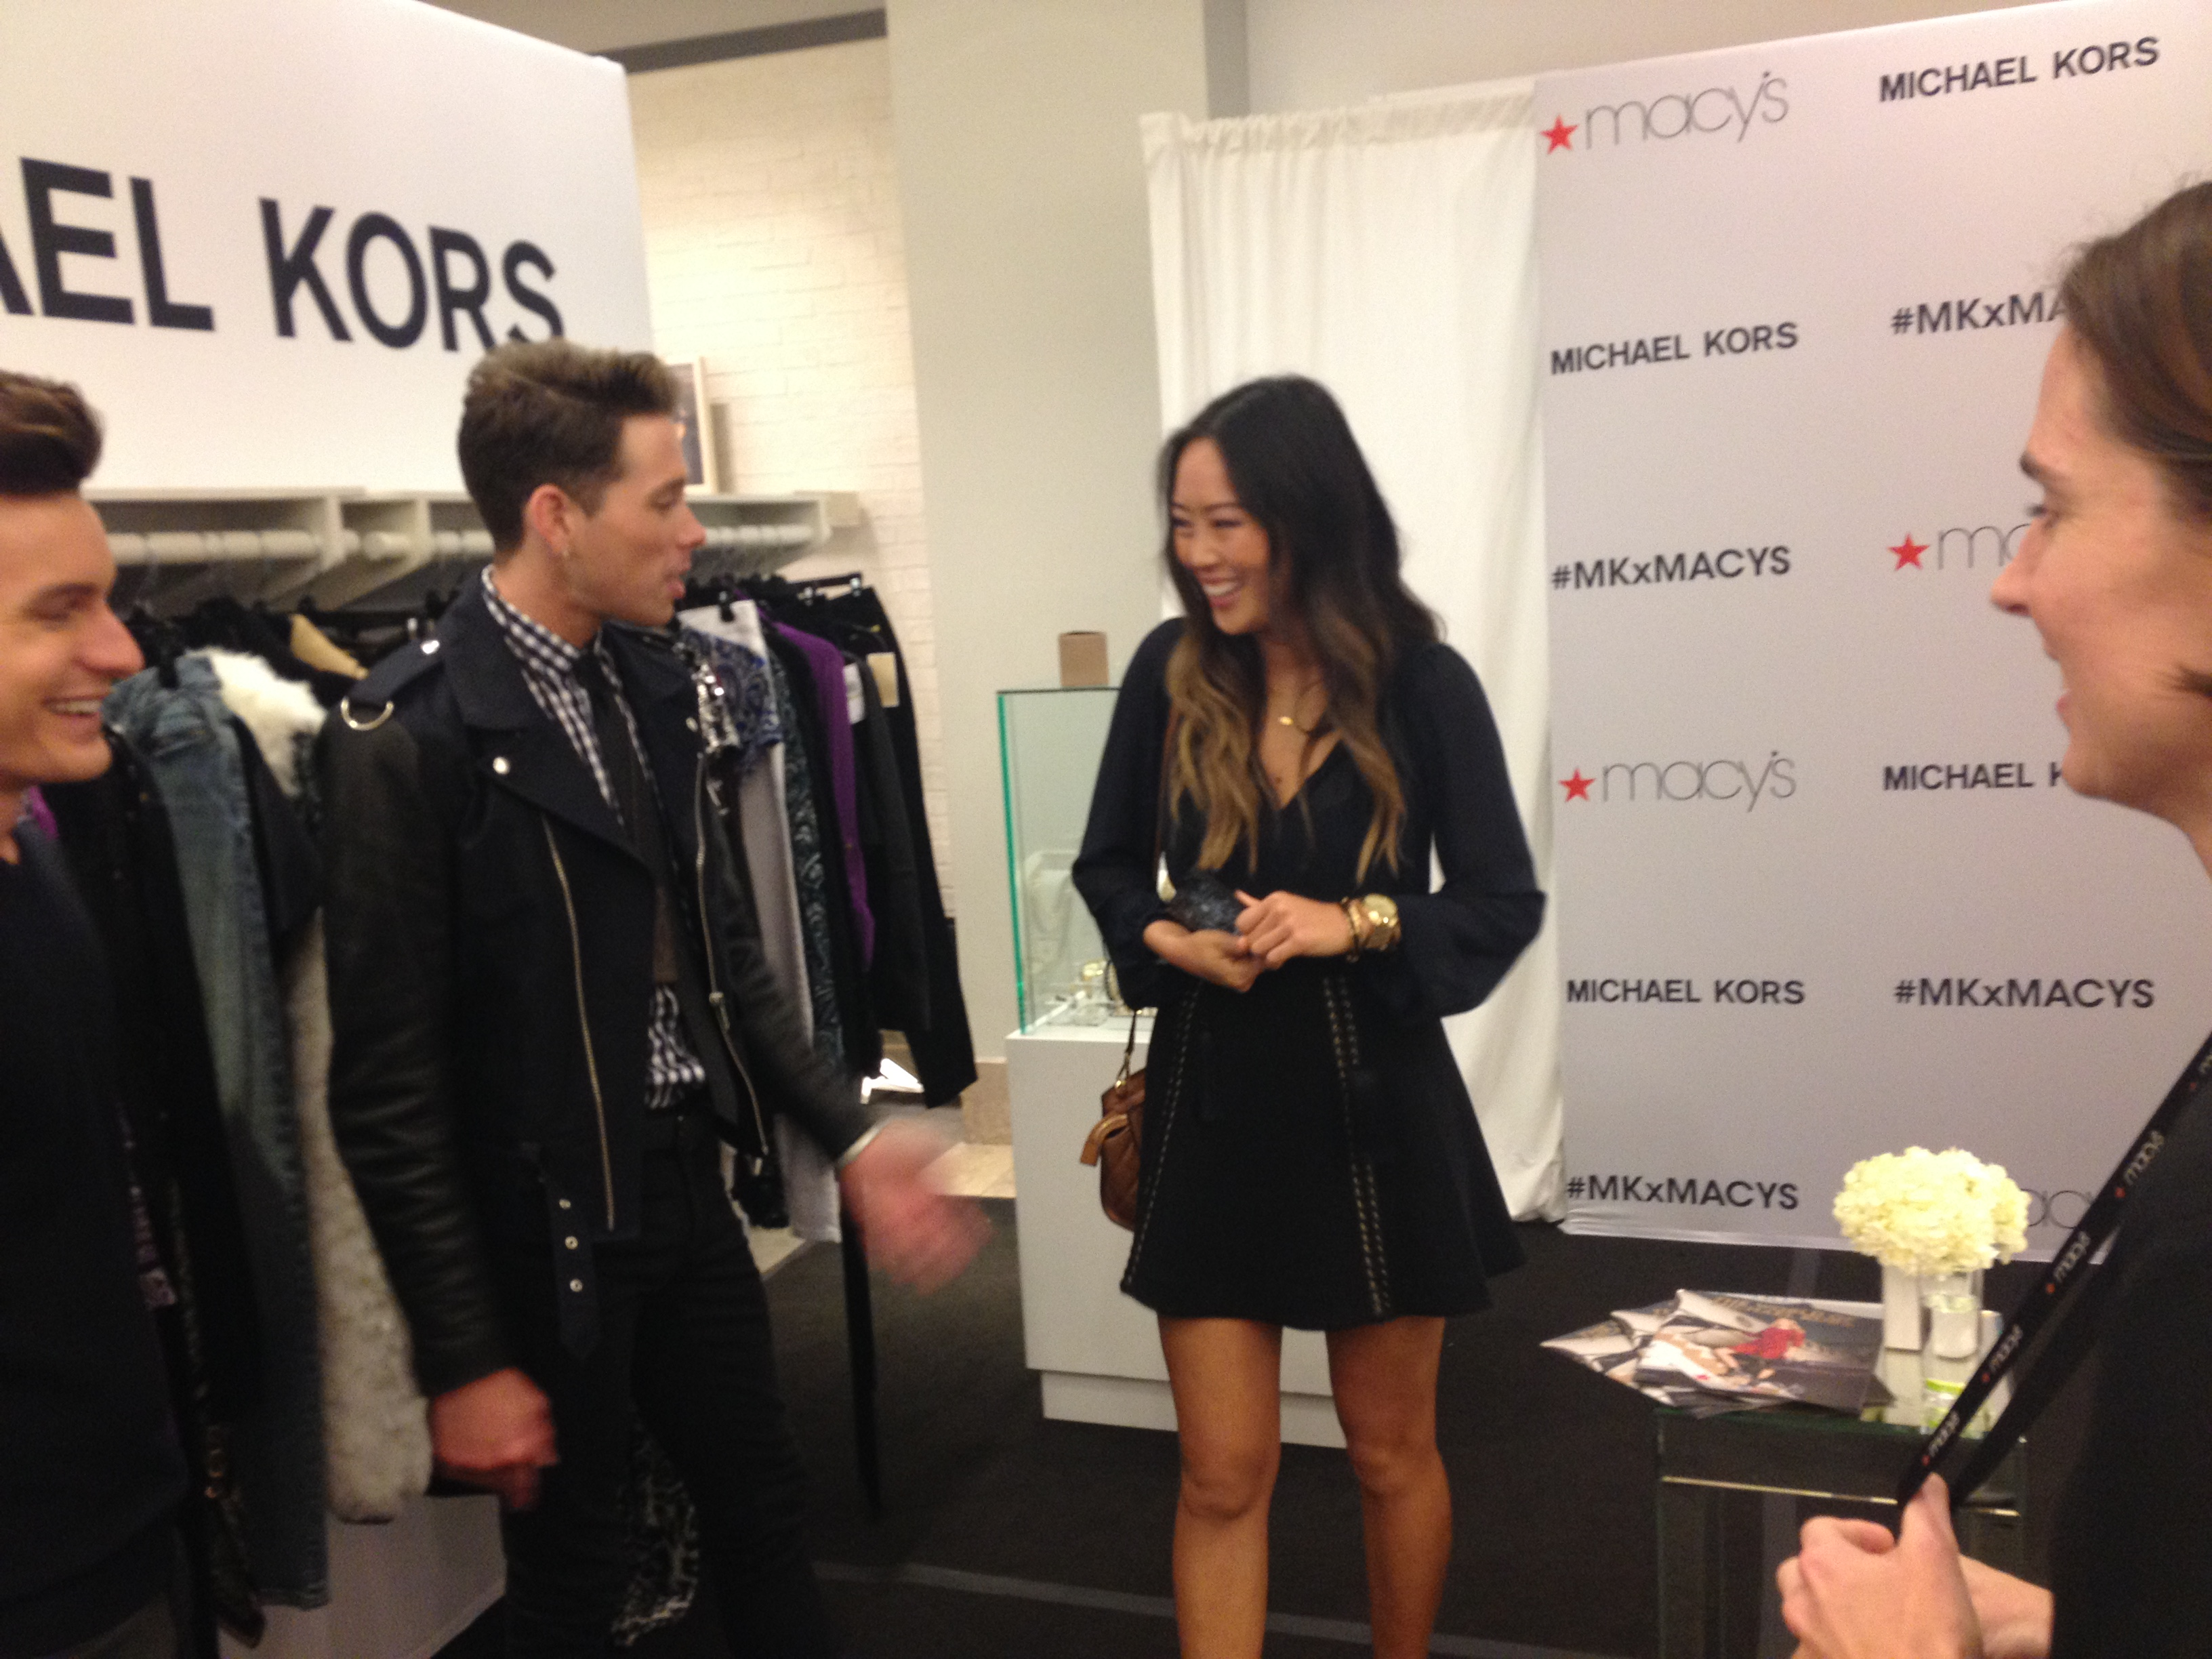 Some of team Michael Kors chatting with Aimee Song following the event.